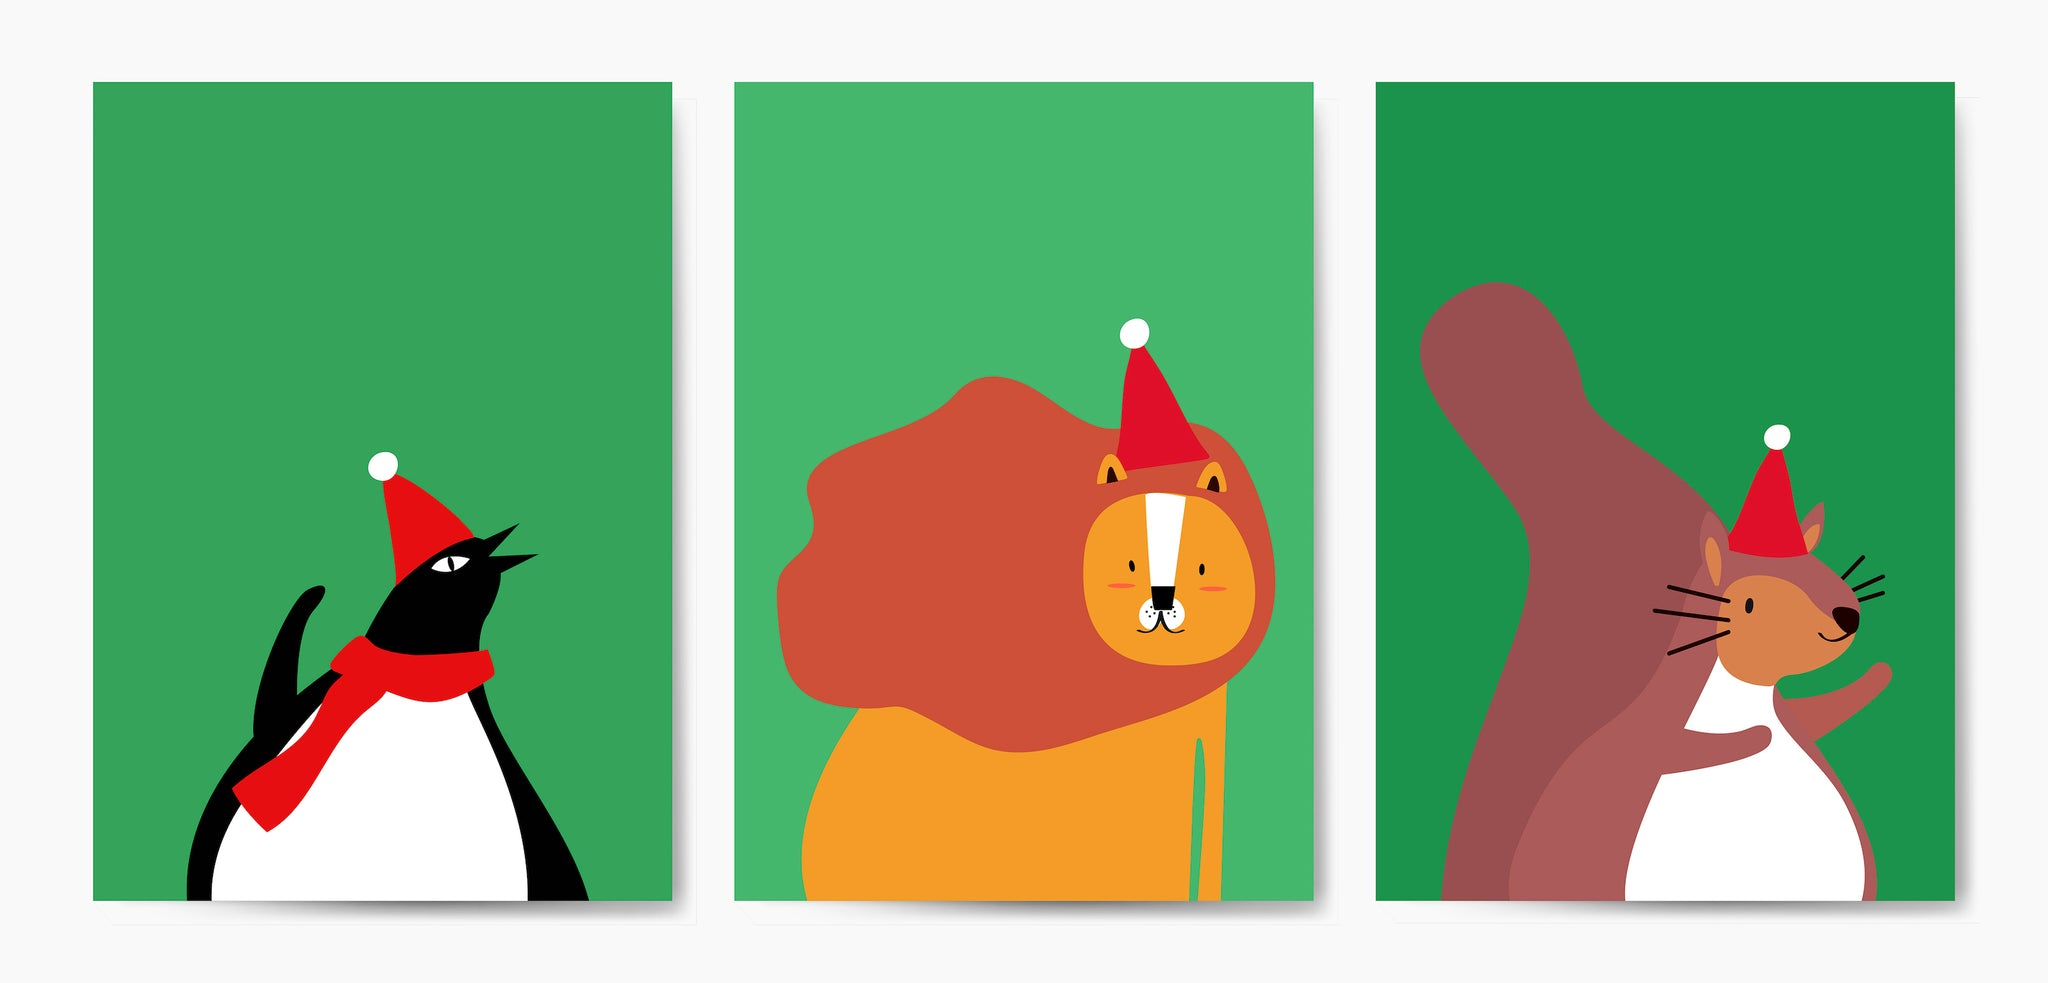 Holiday Cartoon Animals to Lighten Up Your Blog